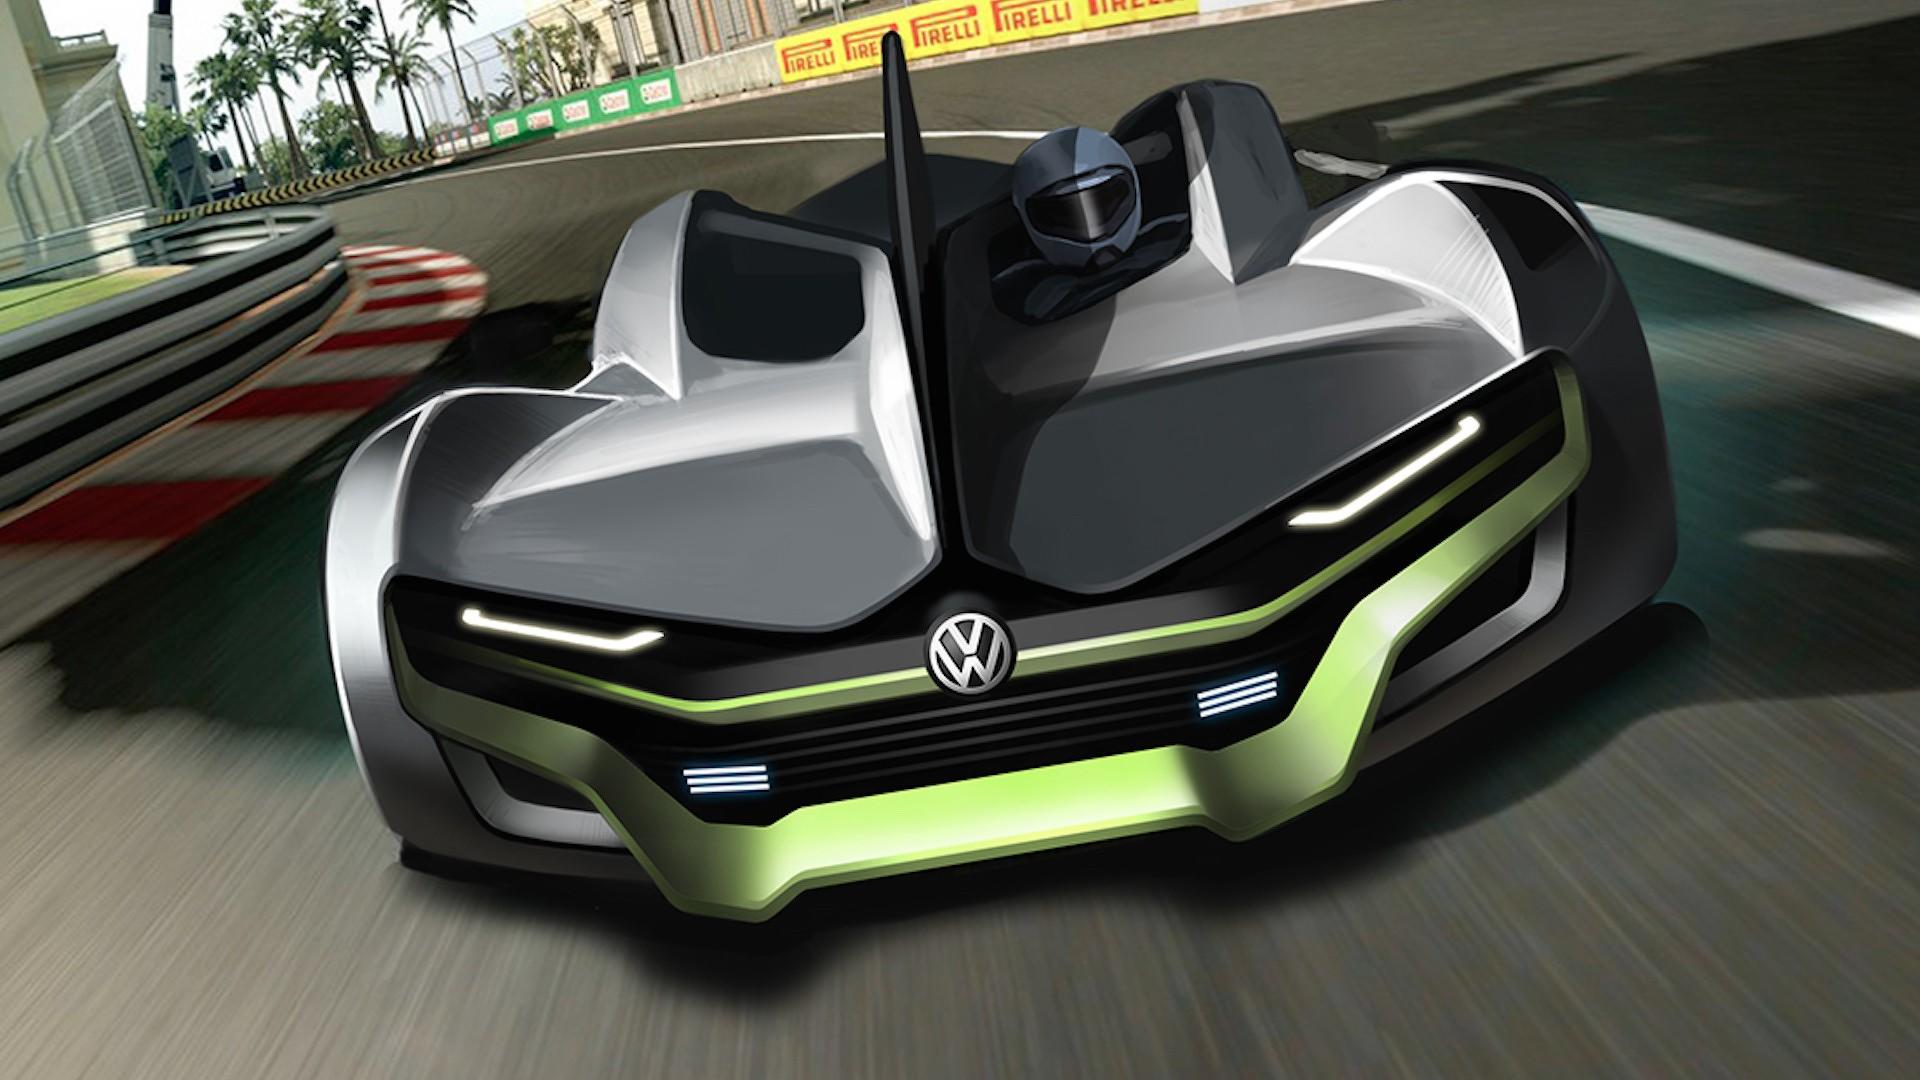 2023 Vw Sports Car Rendering Looks Ready For The Track